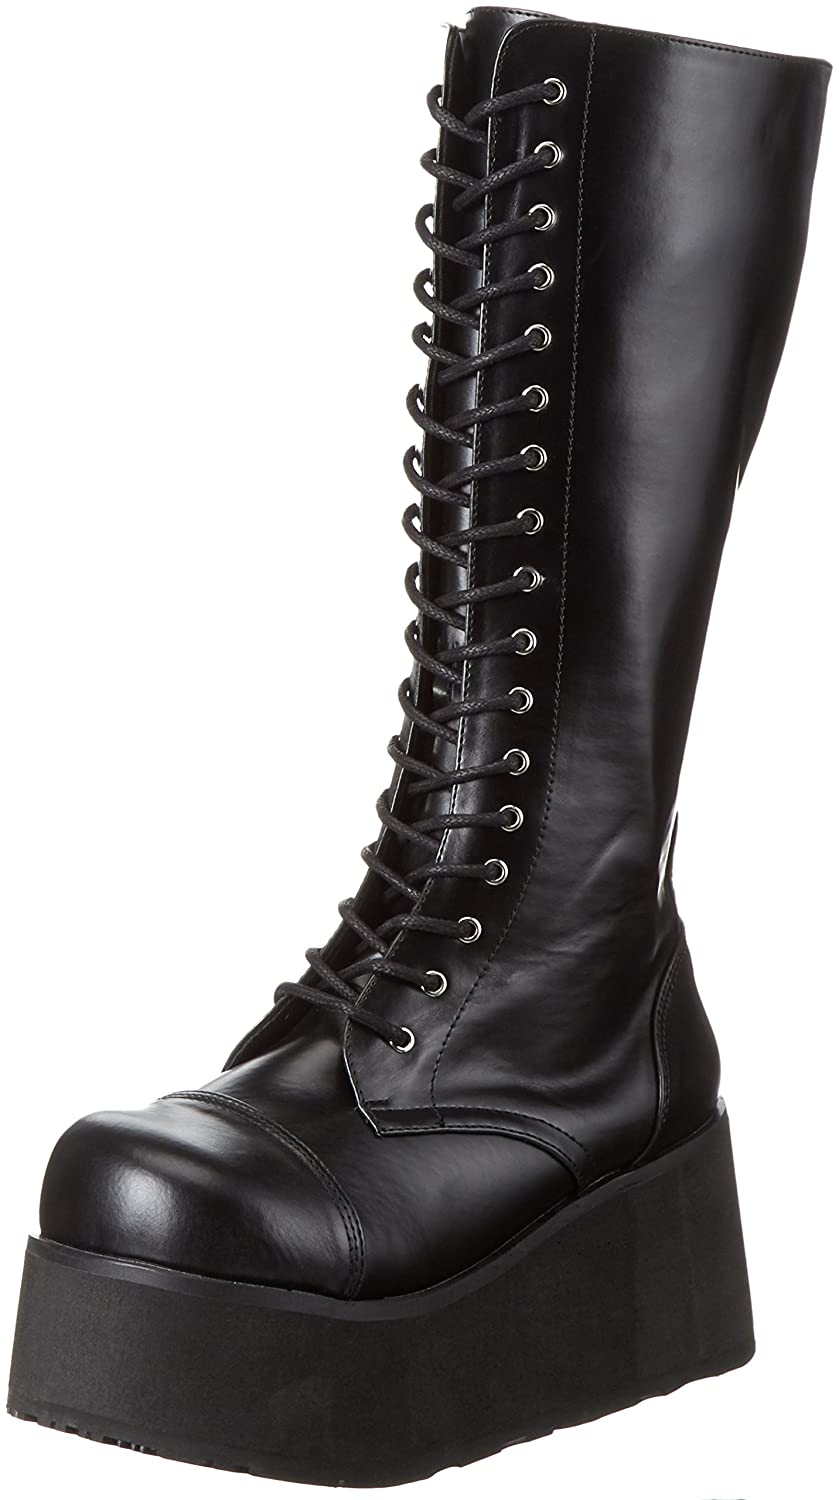 Pleaser Demonia by Men's Trashville-502 Lace-Up Boot B000YQYSNK 5 D(M) US|Black Pu